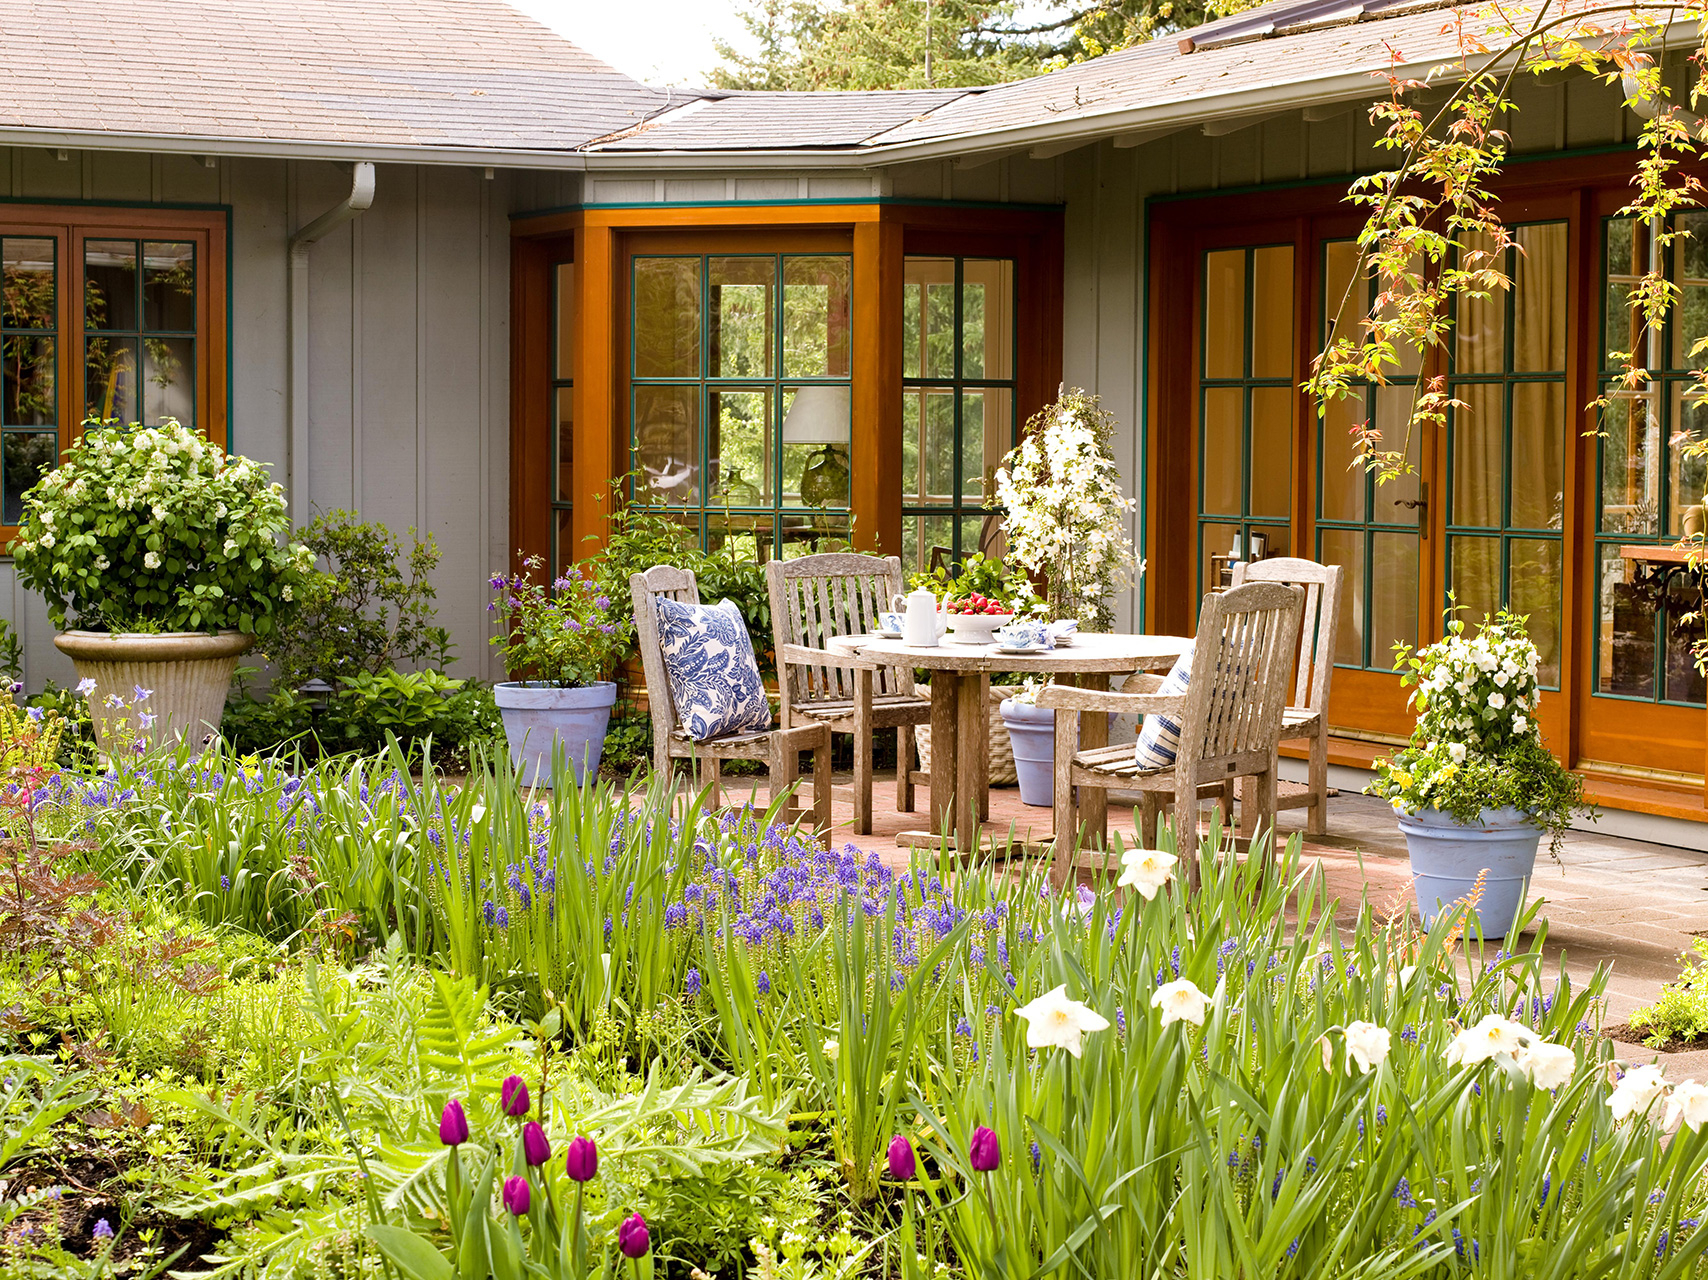 7 Landscaping Ideas For Beginners Better Homes Gardens throughout 11 Smart Ways How to Build Basic Backyard Landscaping